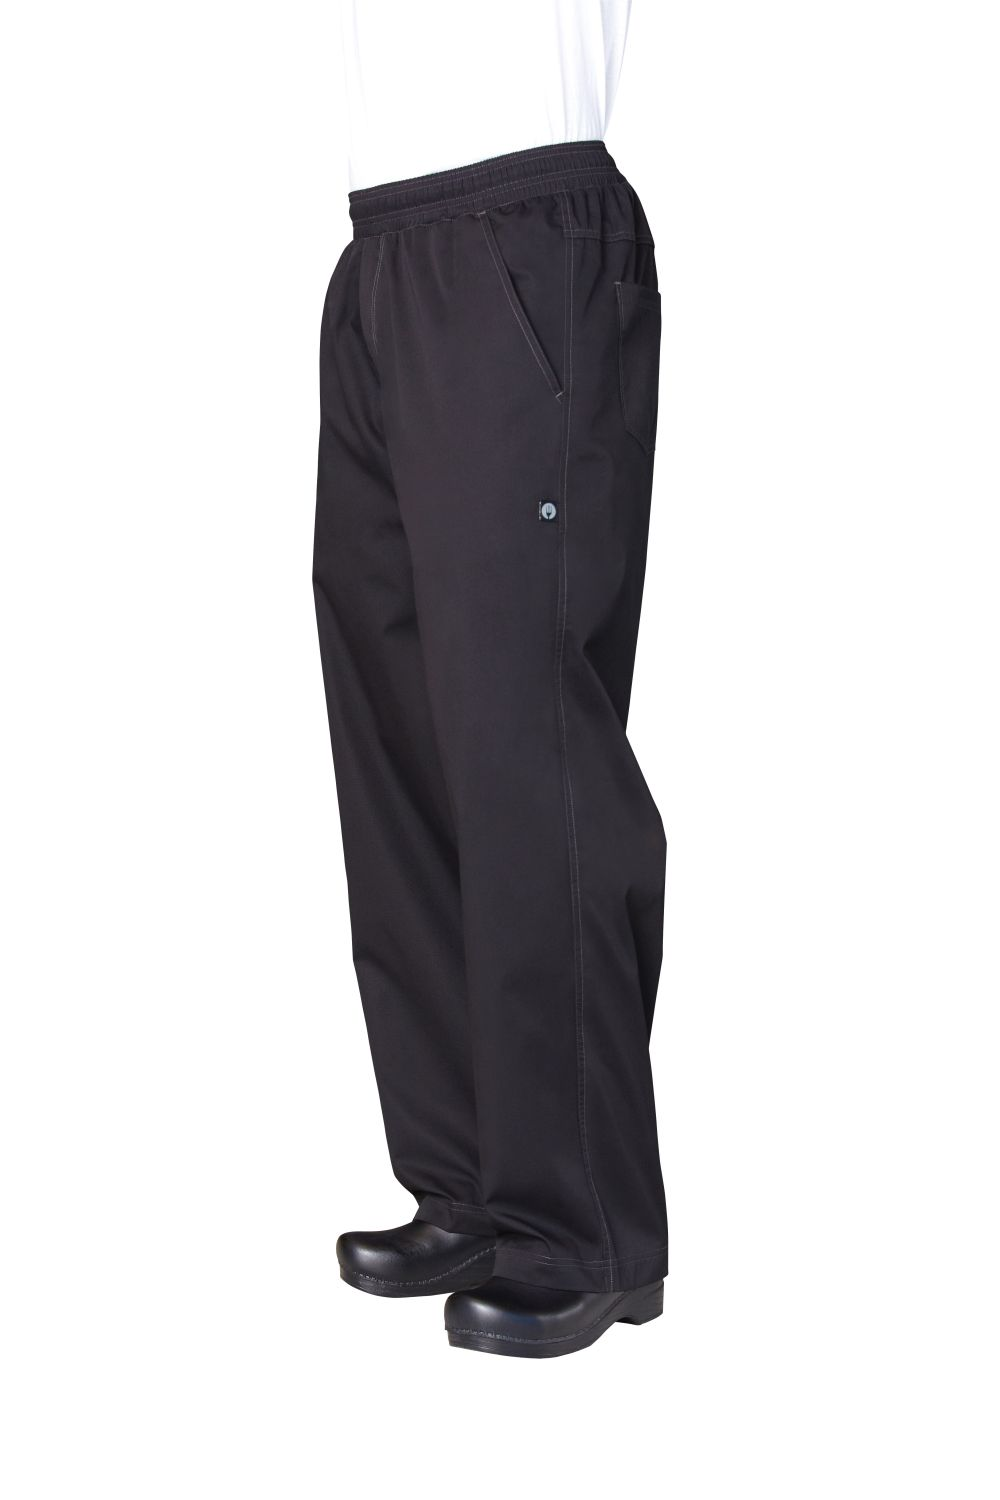 Basic Mens Baggy Lightweight Chef Pants-CW